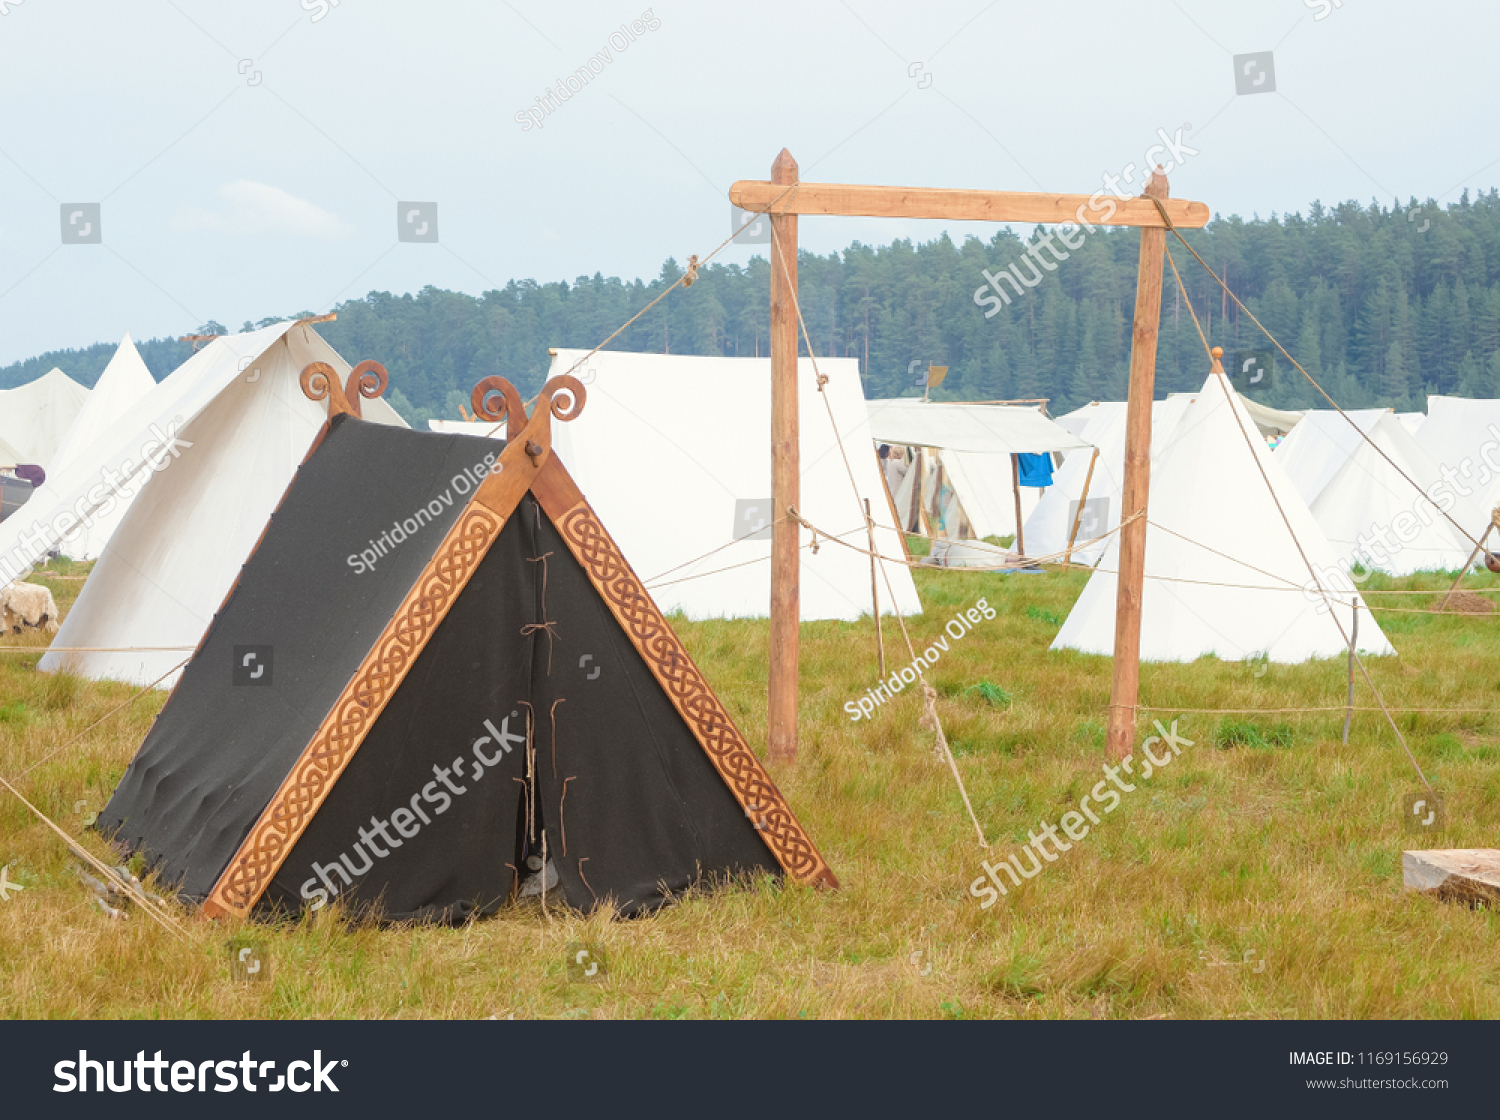 Old Russian campground, black tent in nature tent city, tent in the tent city #1169156929